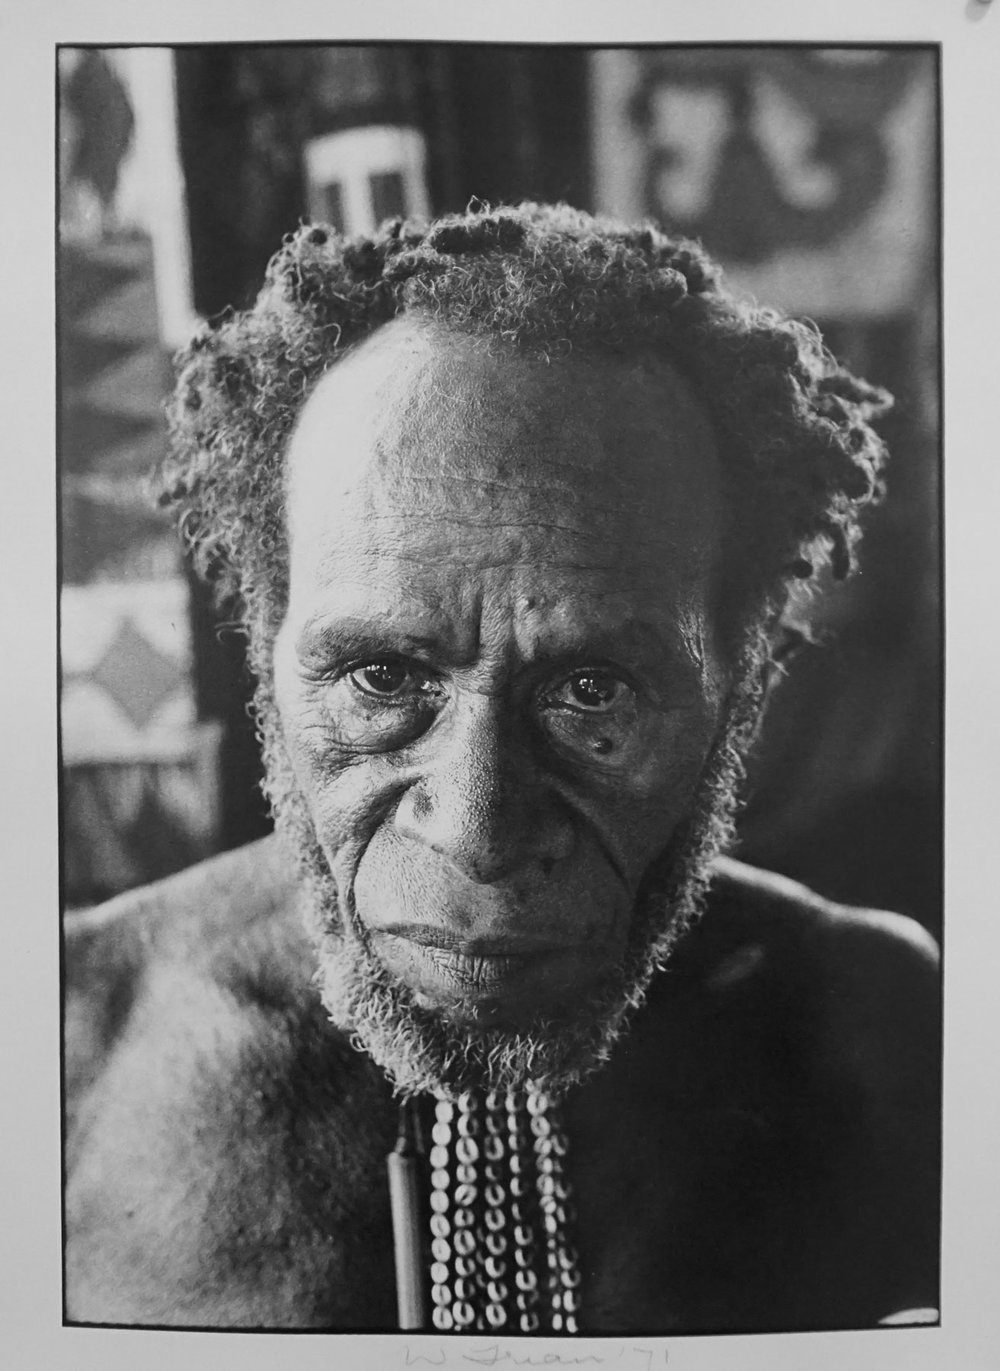 73. Richard Woldendorp, 'Village Headman, Baliem Valley, West Irian Jaya, Indonesia', BW354, taken and printed in 1971, Vintage Print